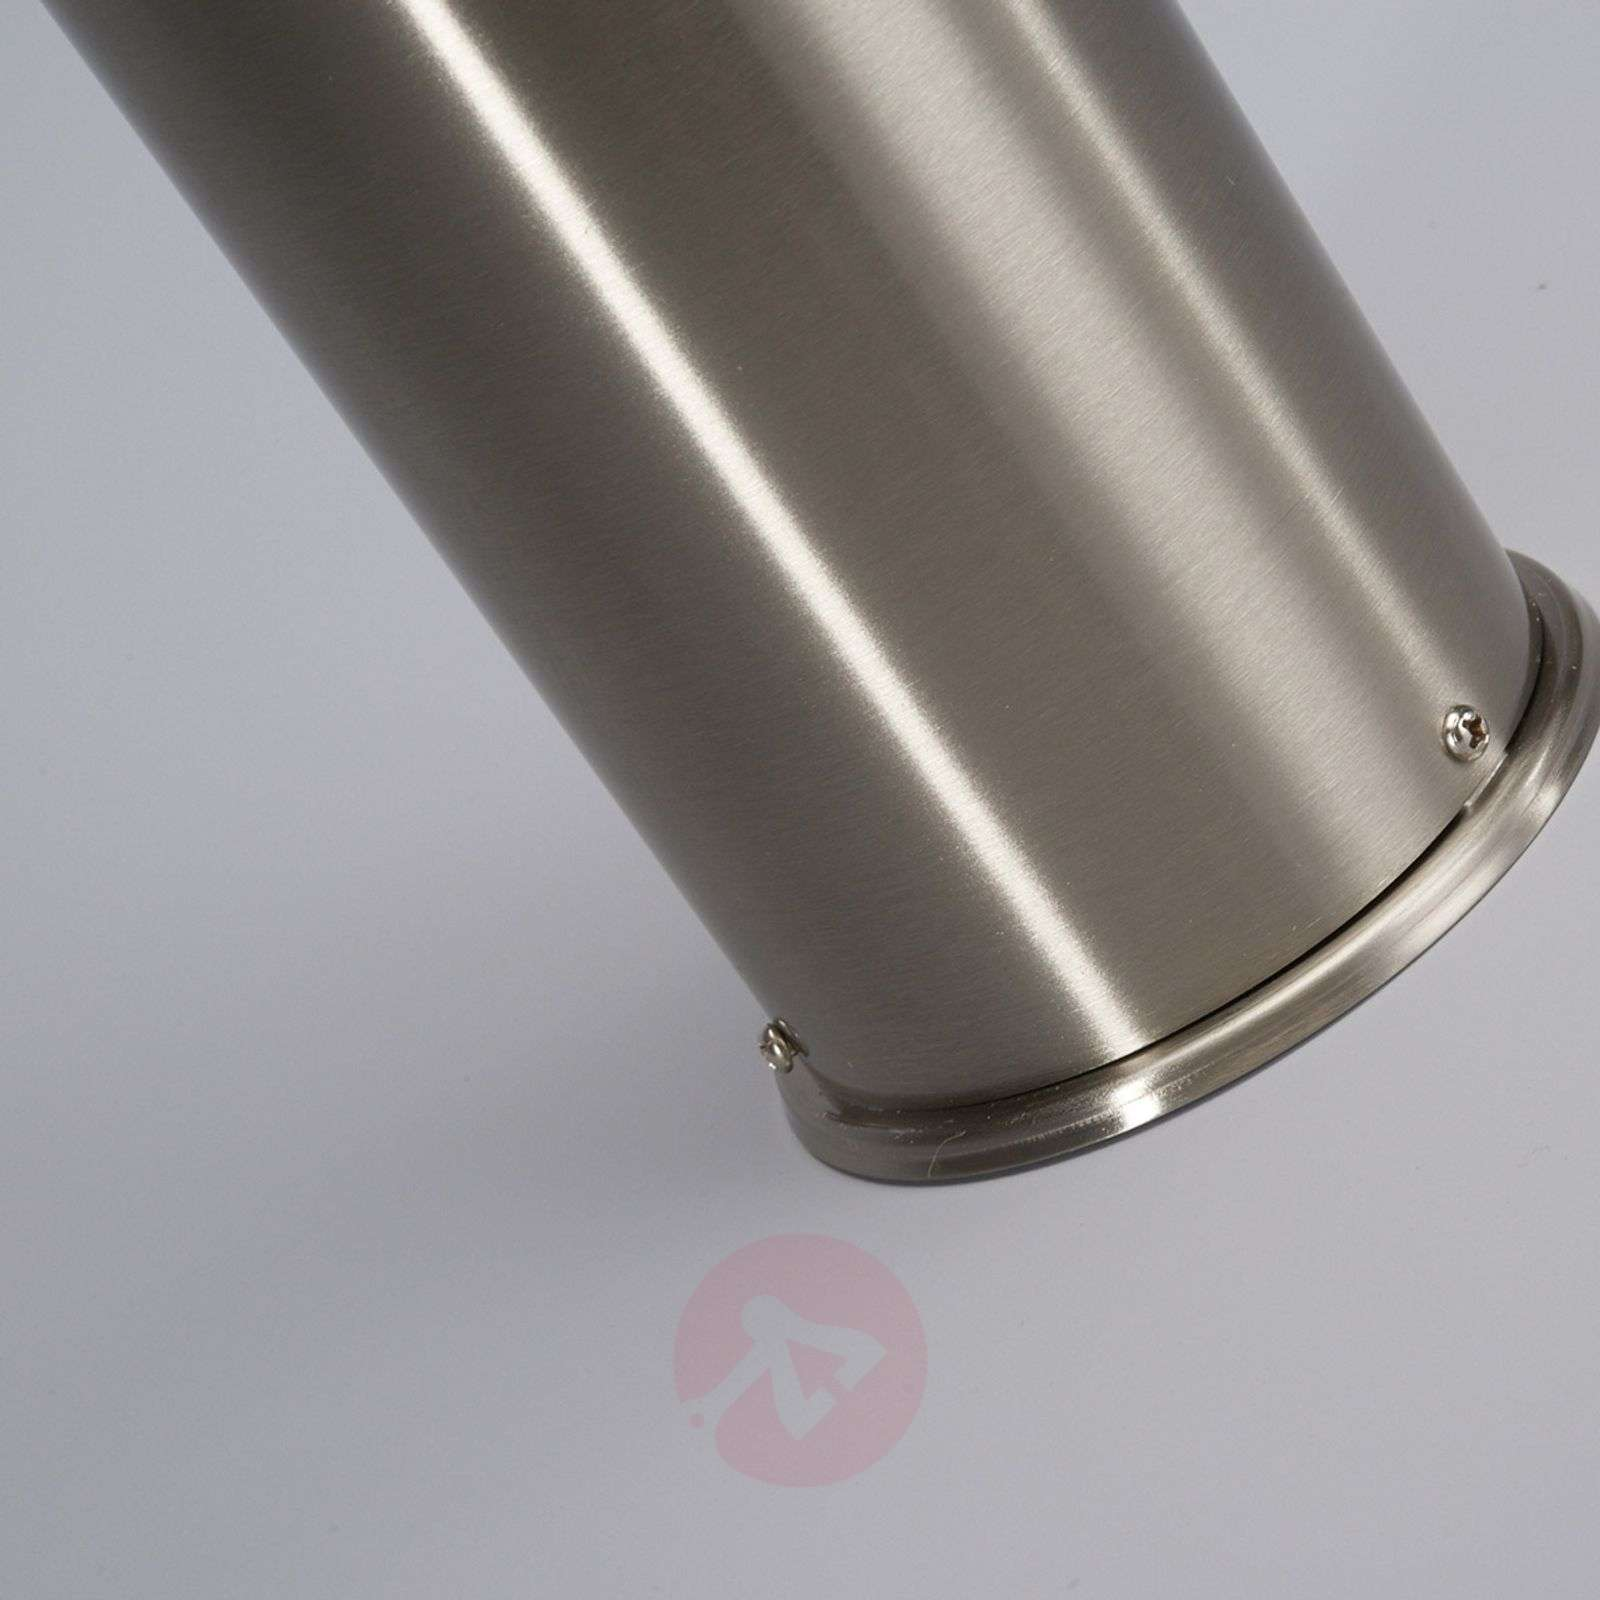 Enja Stainless Steel Pillar Lamp with Fins-9960023-01